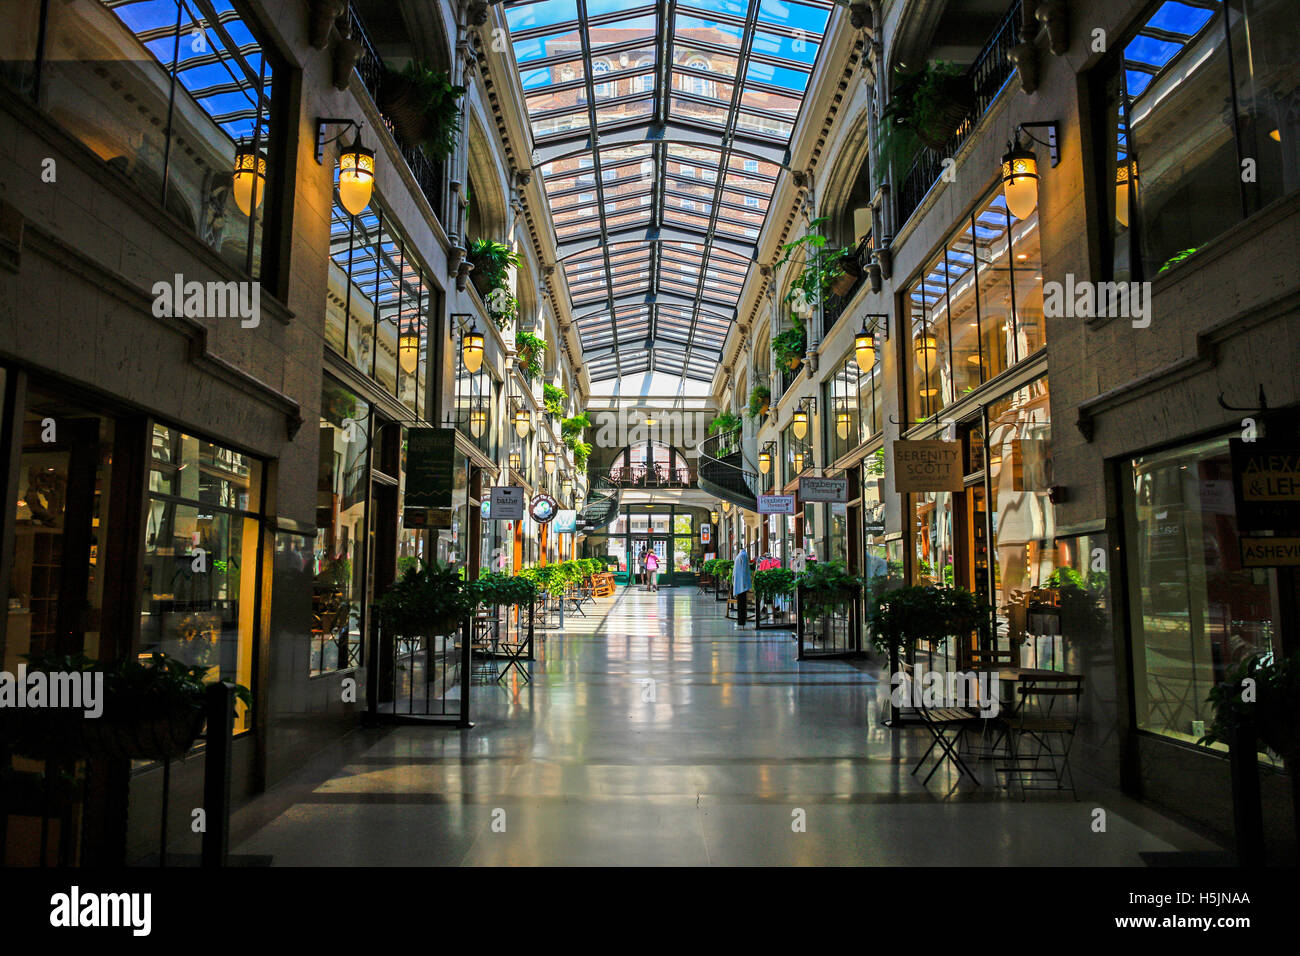 Inside the Grove Arcade shopping plaza in downtown Asheville NC - Stock Image